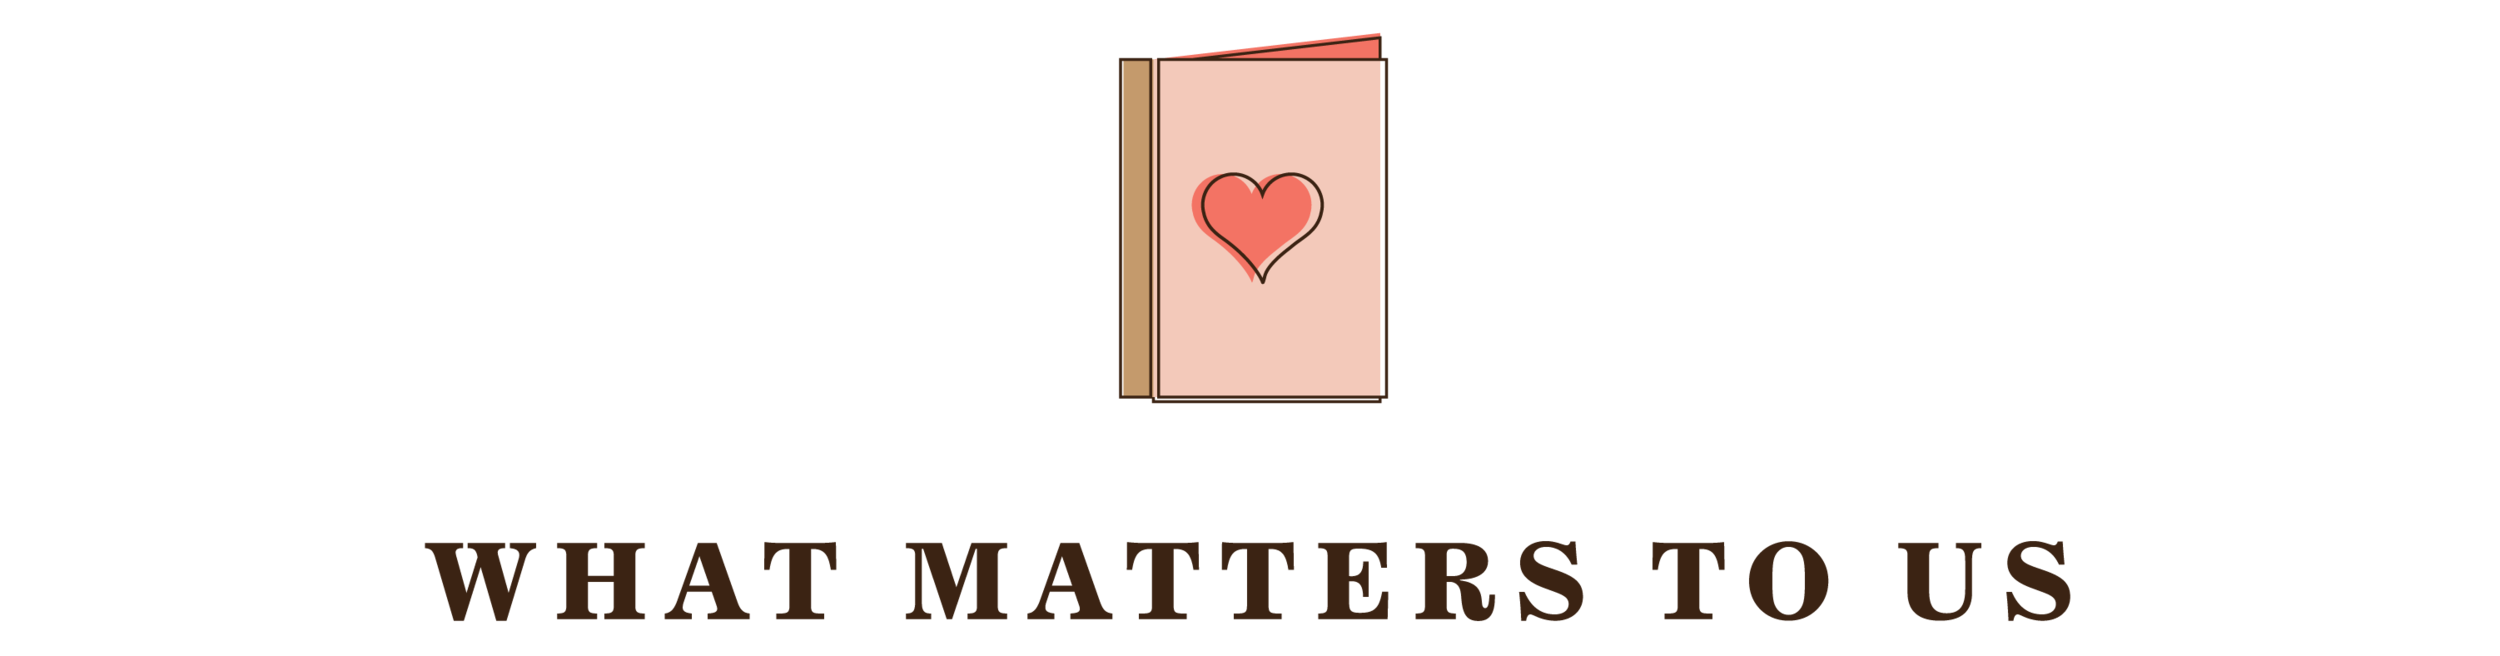 LovelyPaperThings_Homepageiconrefresh_2-11.png